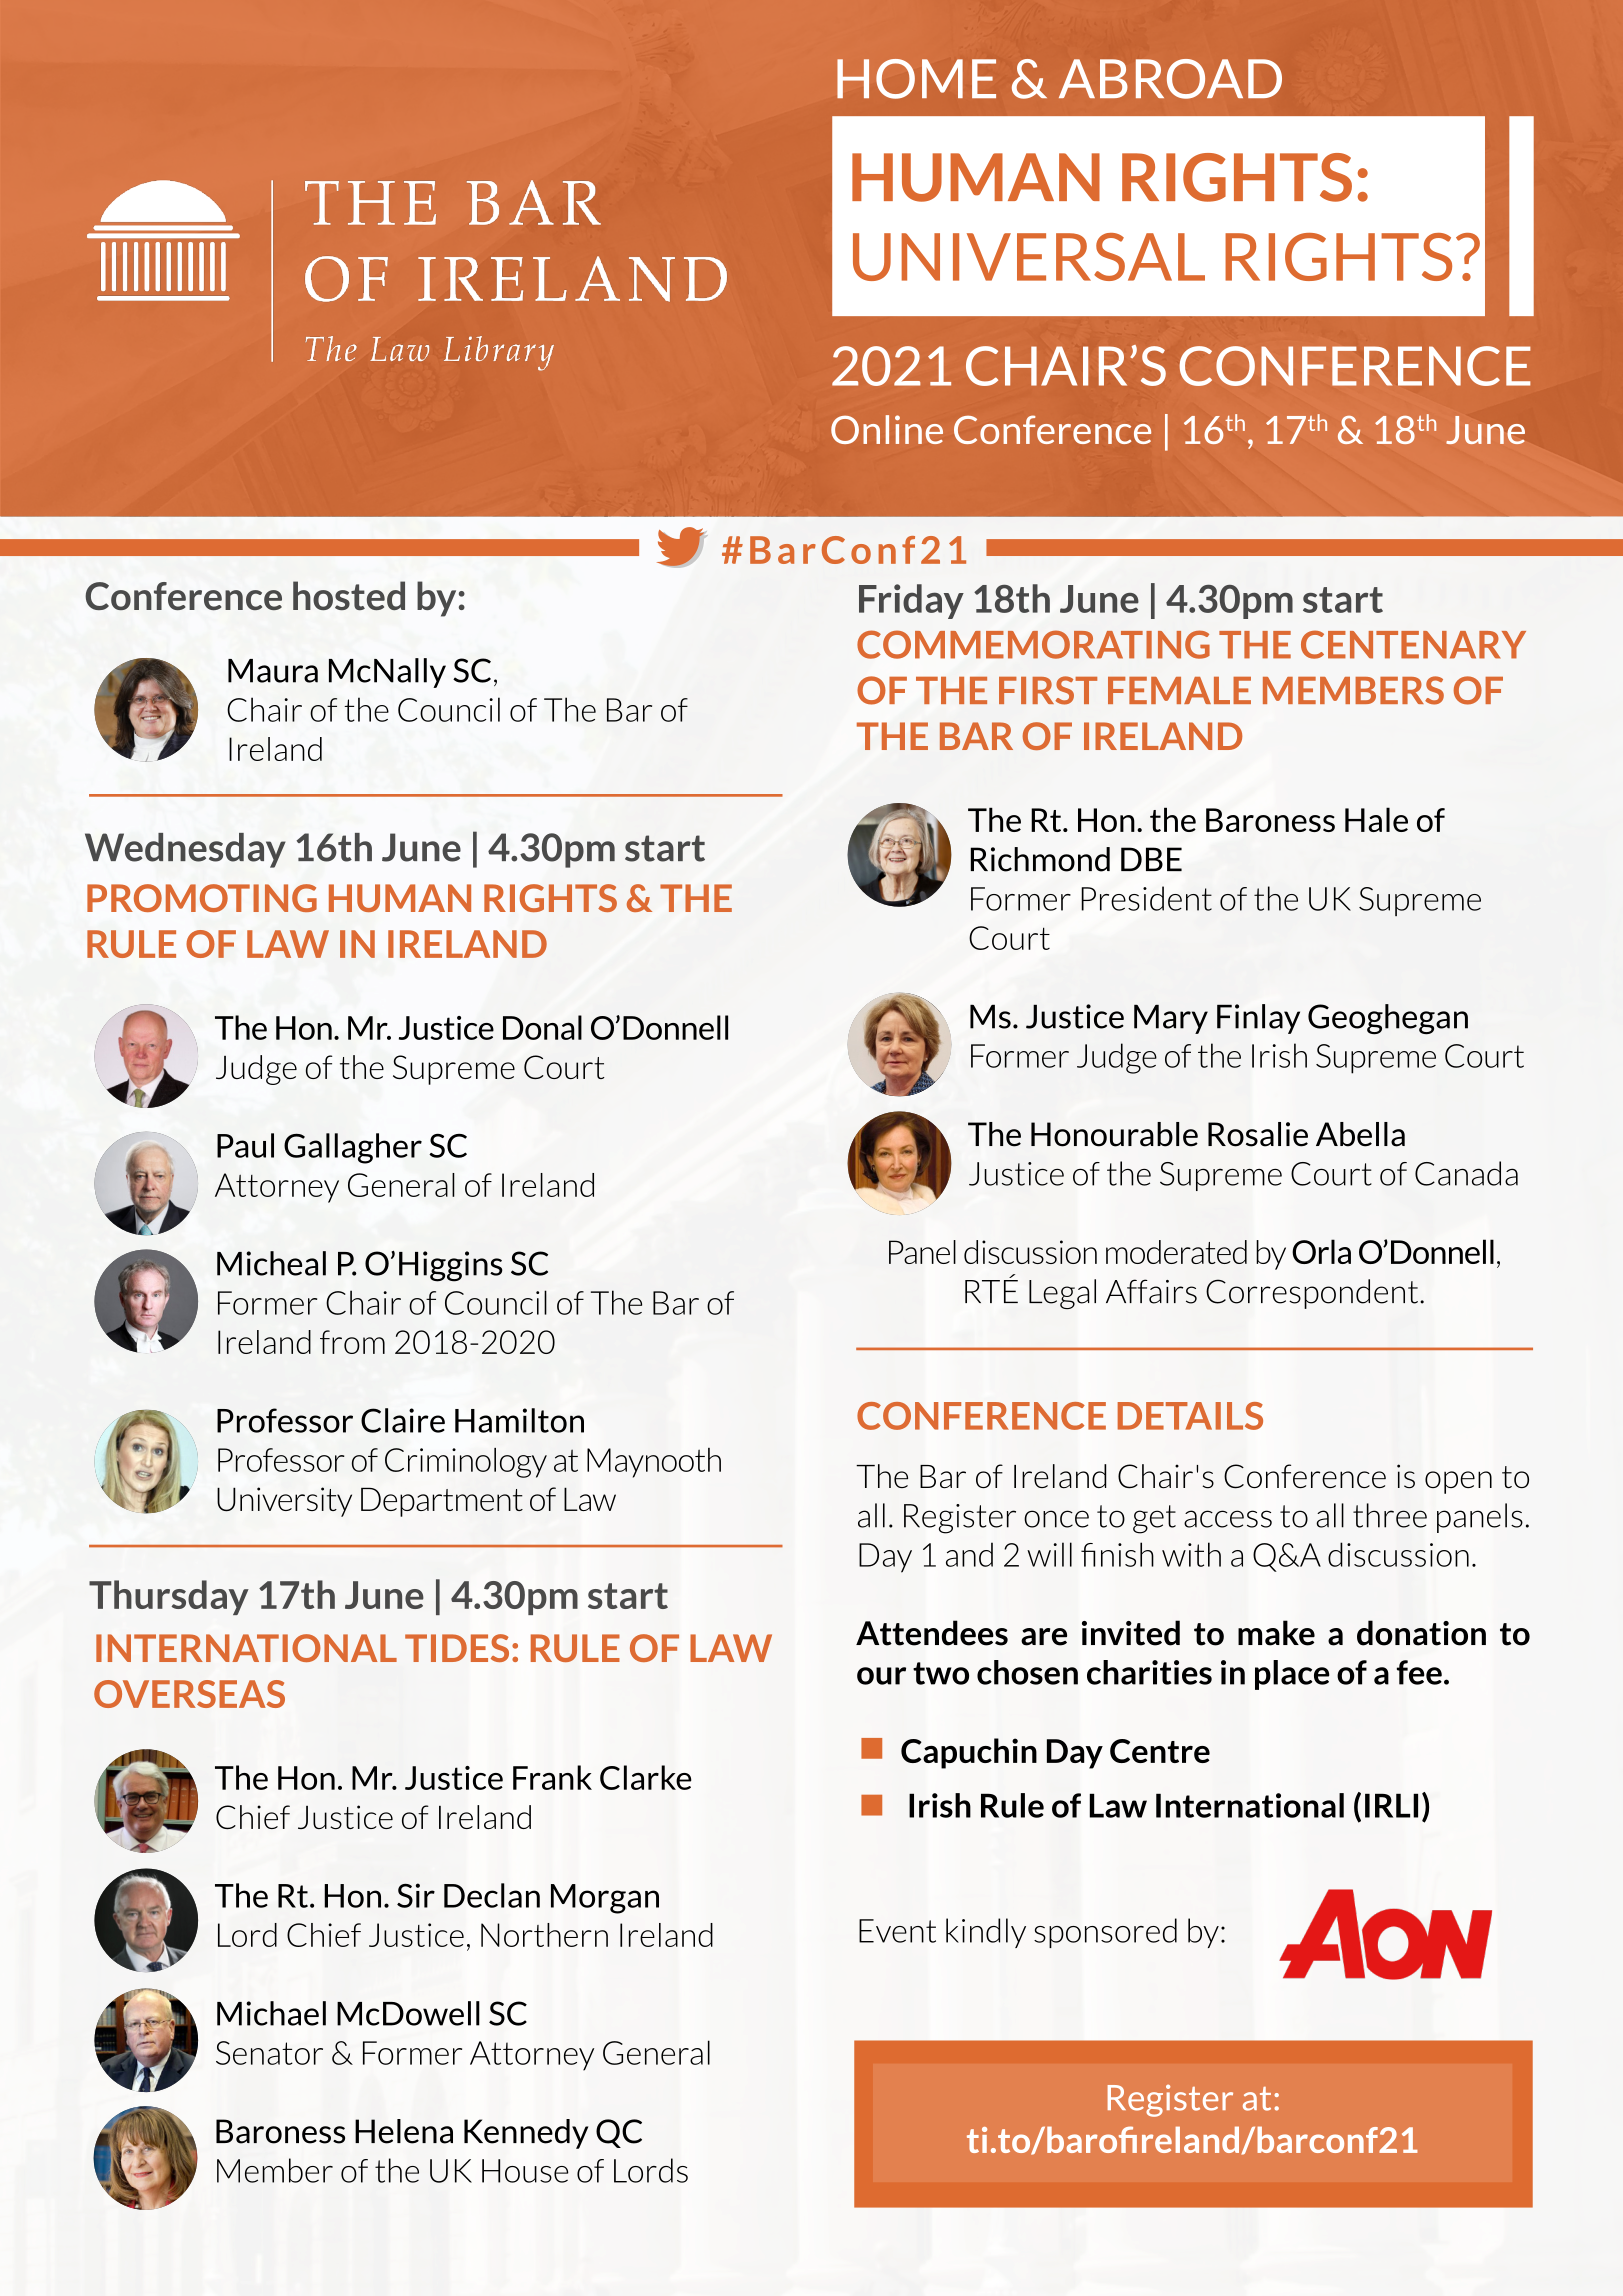 2021 Chair's Conference Programme